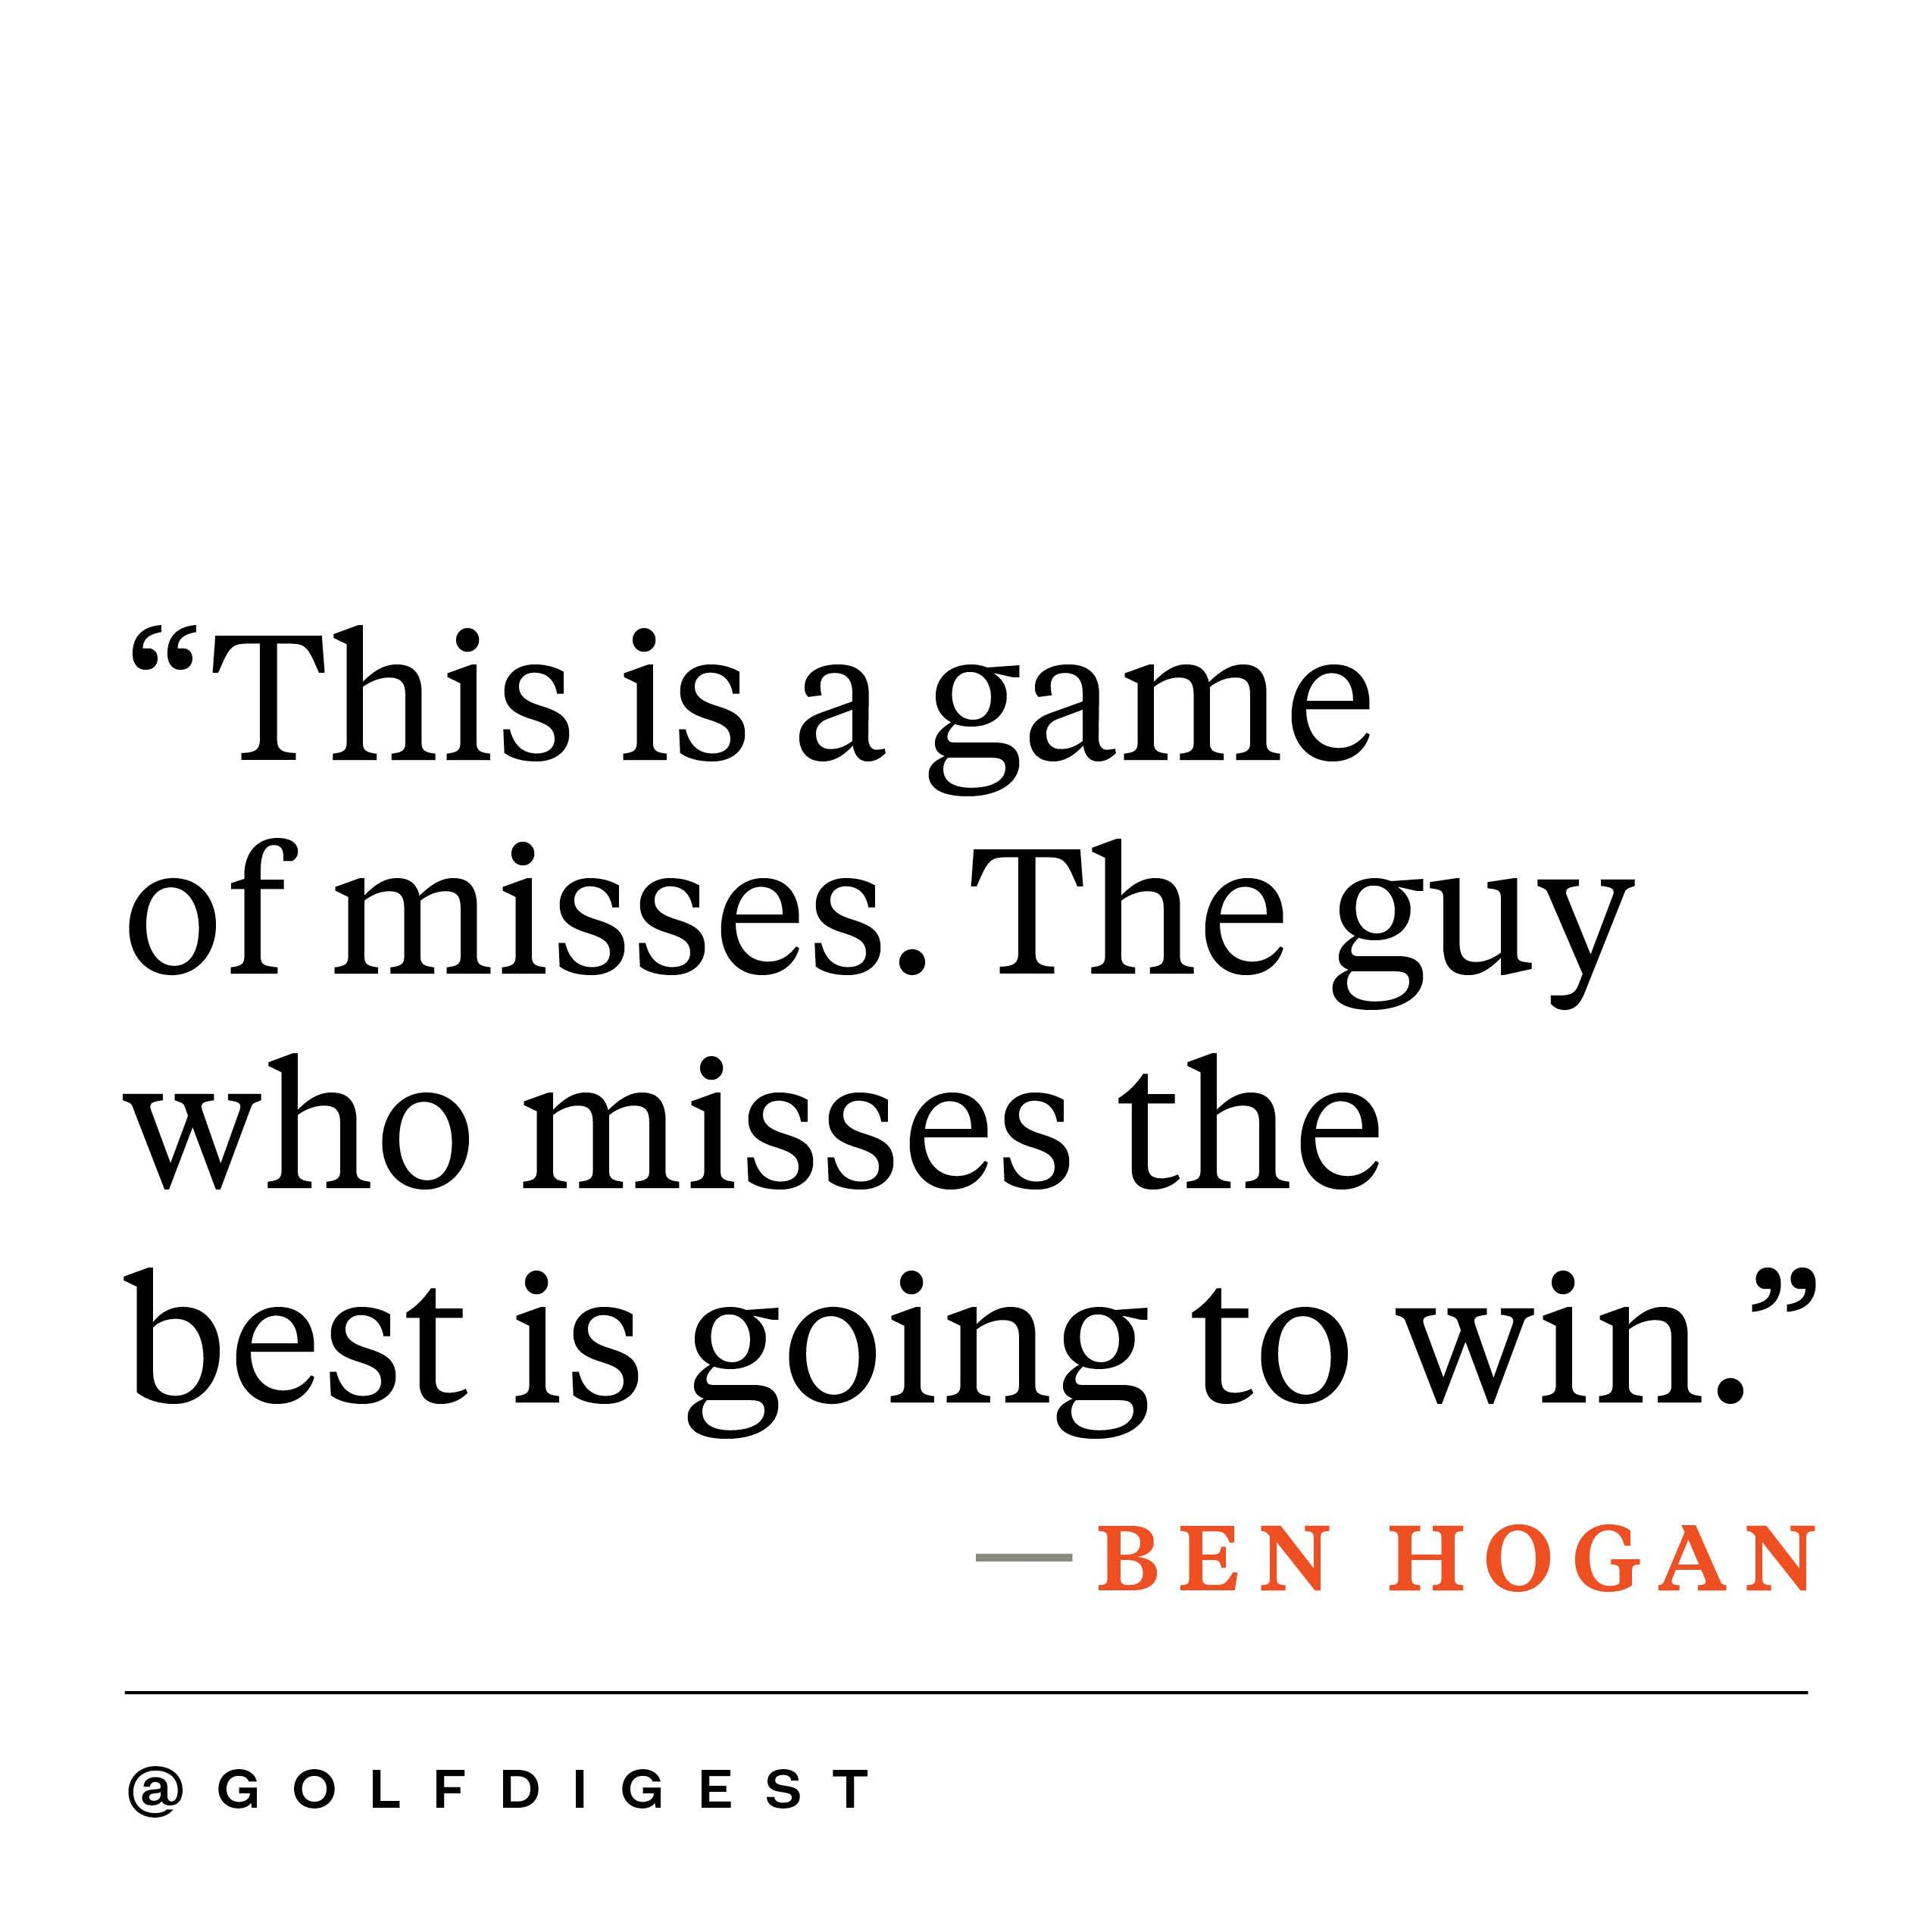 Quotes About Golf 21 Inspirational Golf Quotes Photos  Golf Digest  Golf